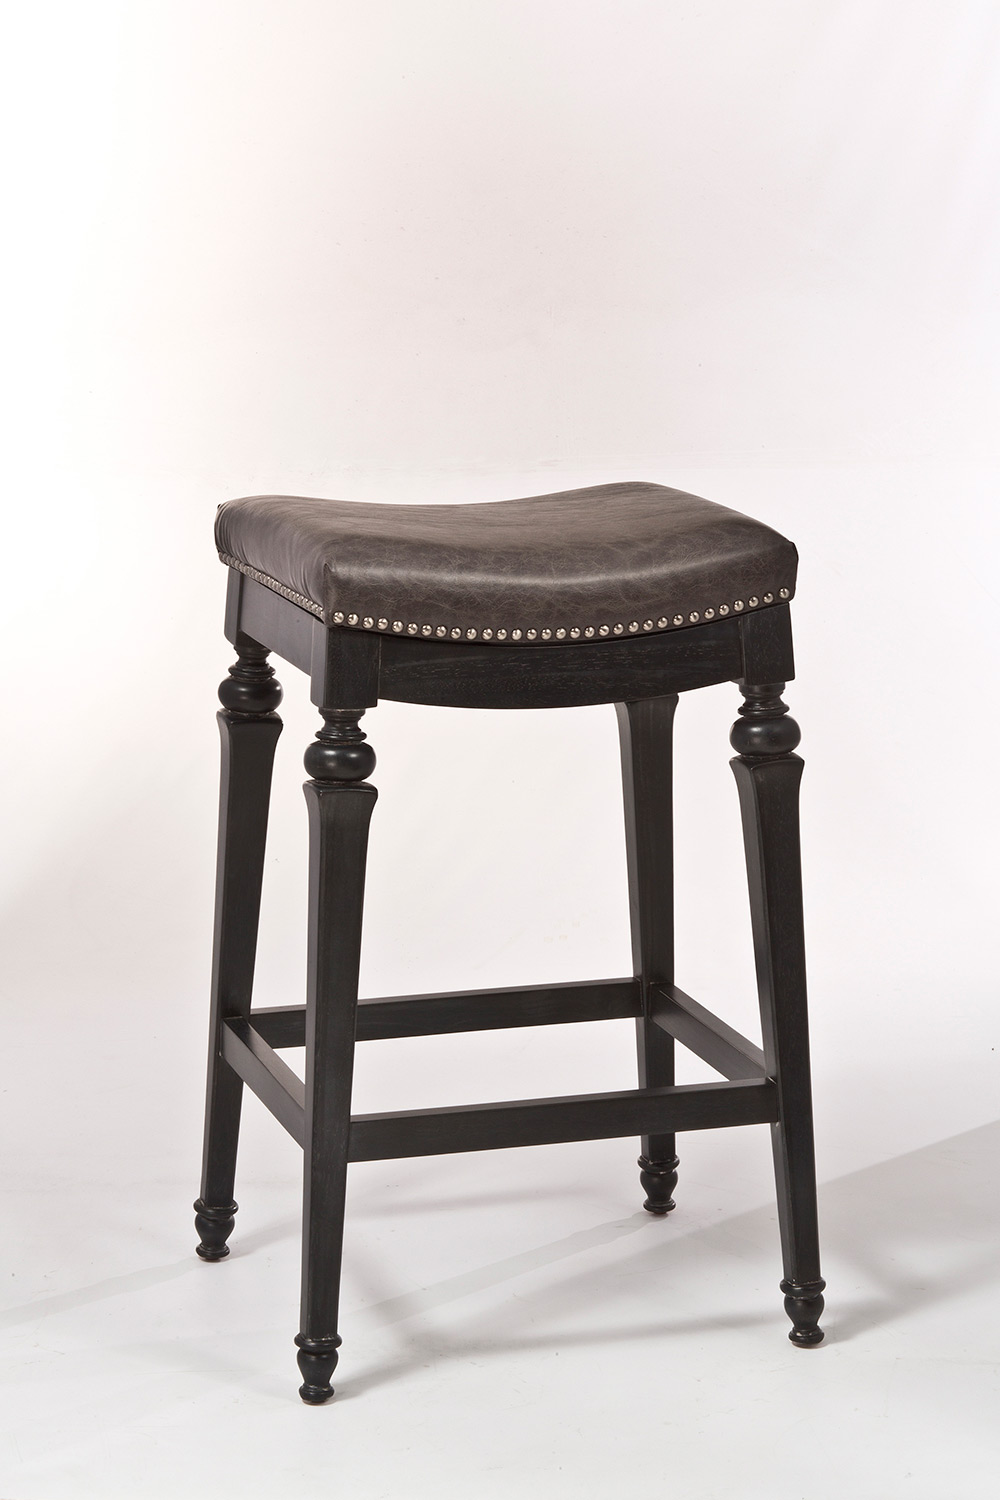 Hillsdale Vetrina Backless Non-Swivel Counter Stool - Black/Gold Rub - Charcoal Faux Leather